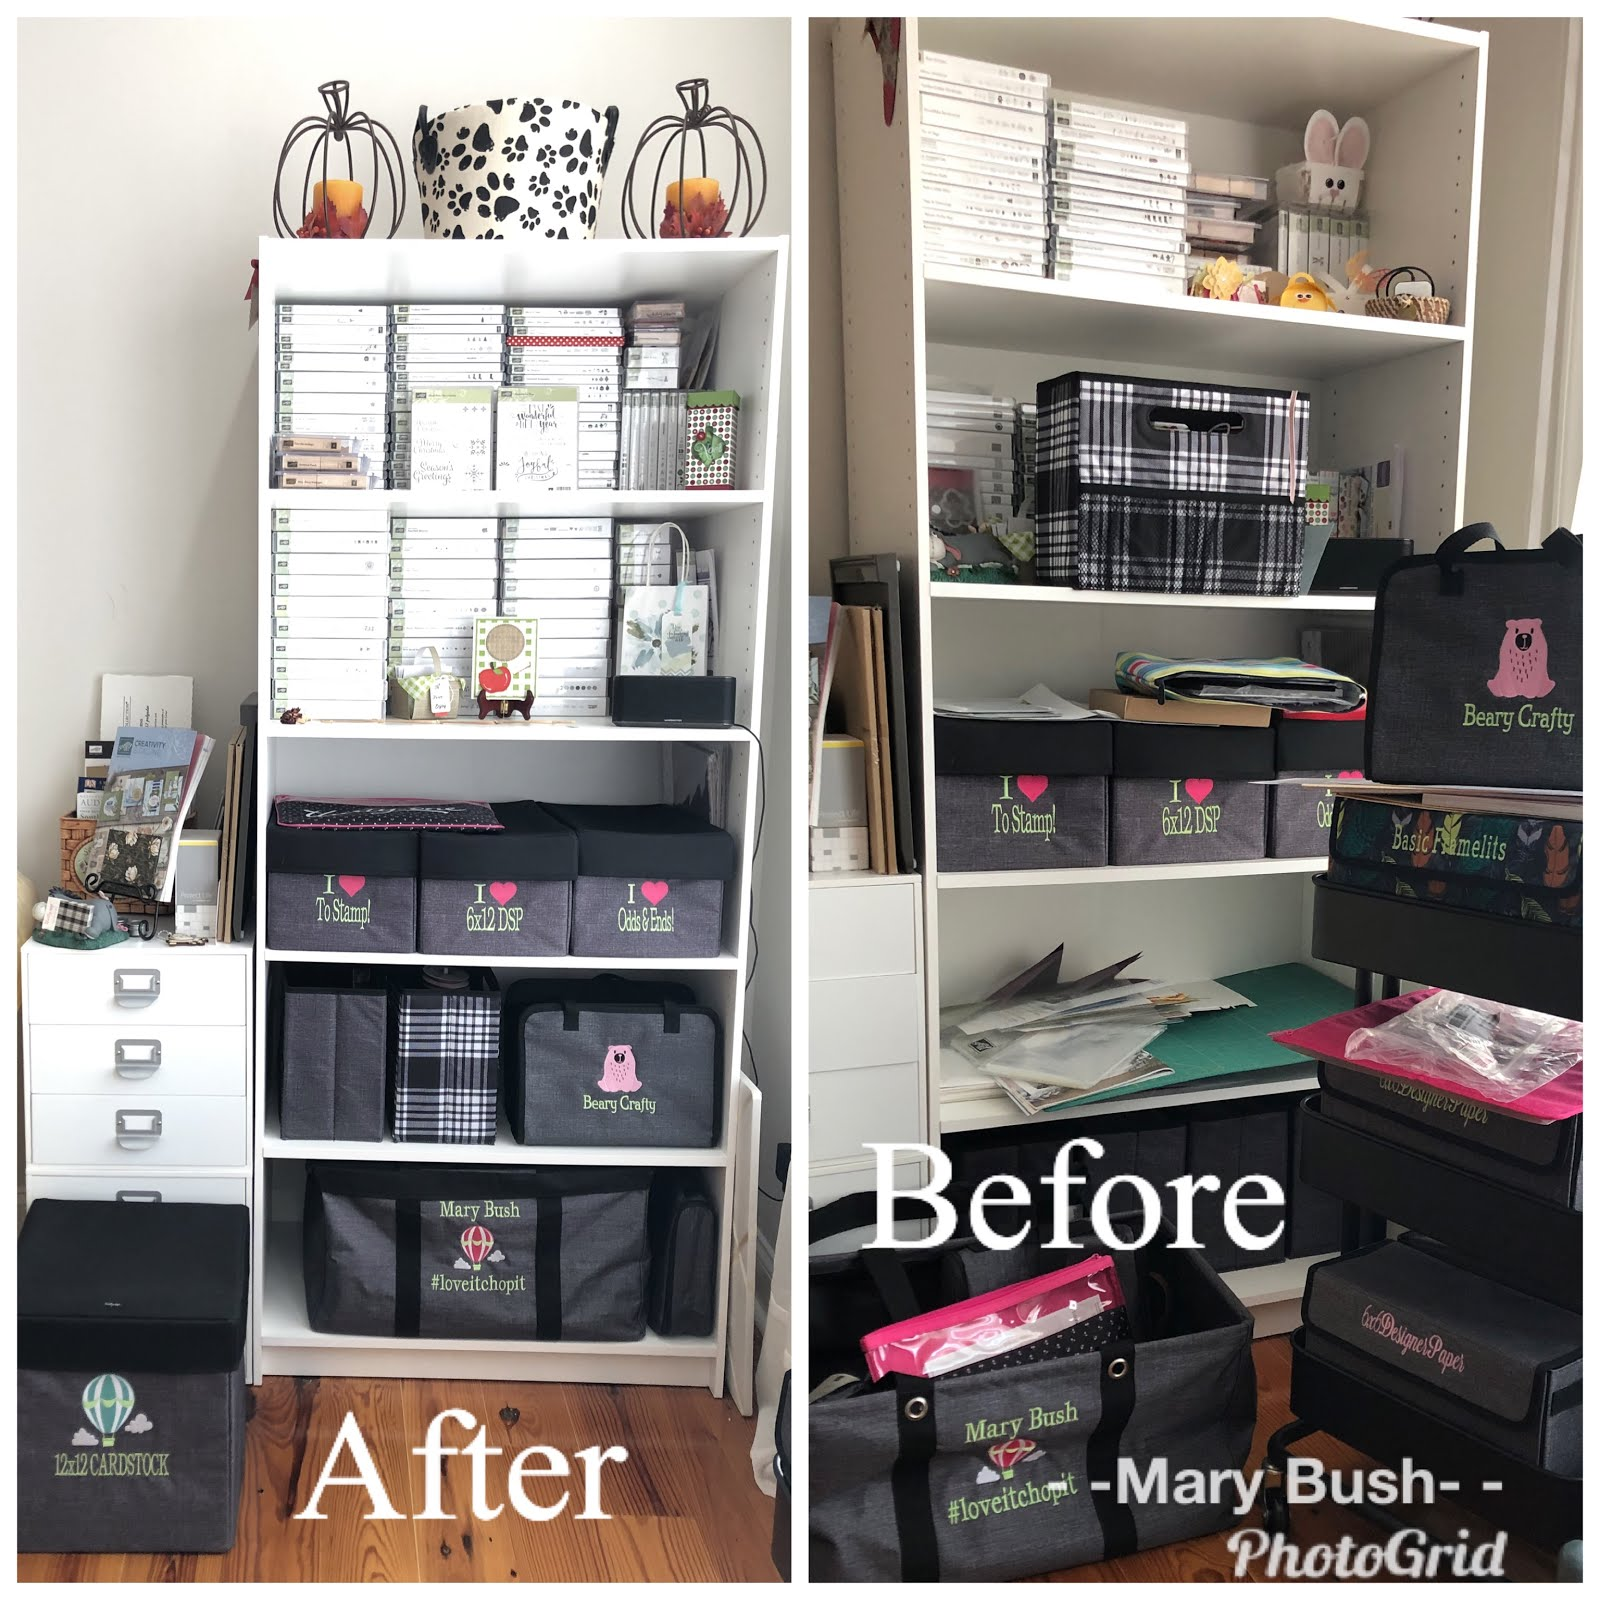 Organize You Space With Thirty-One Gifts